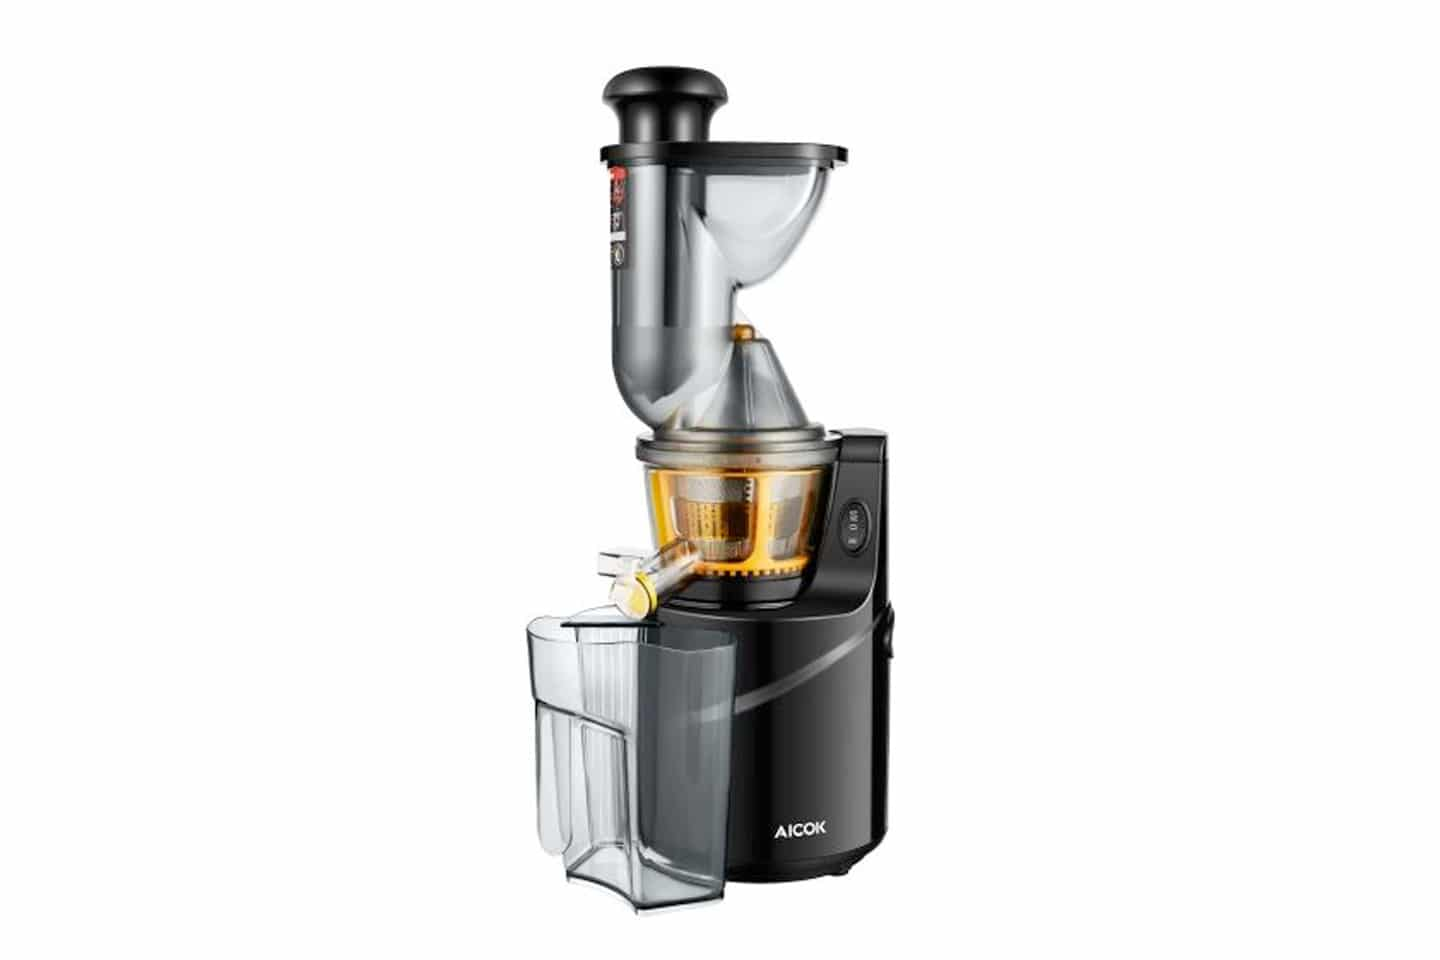 AICOK SD60K Wide Mouth Vertical Slow Juicer Review | Juicing Journal